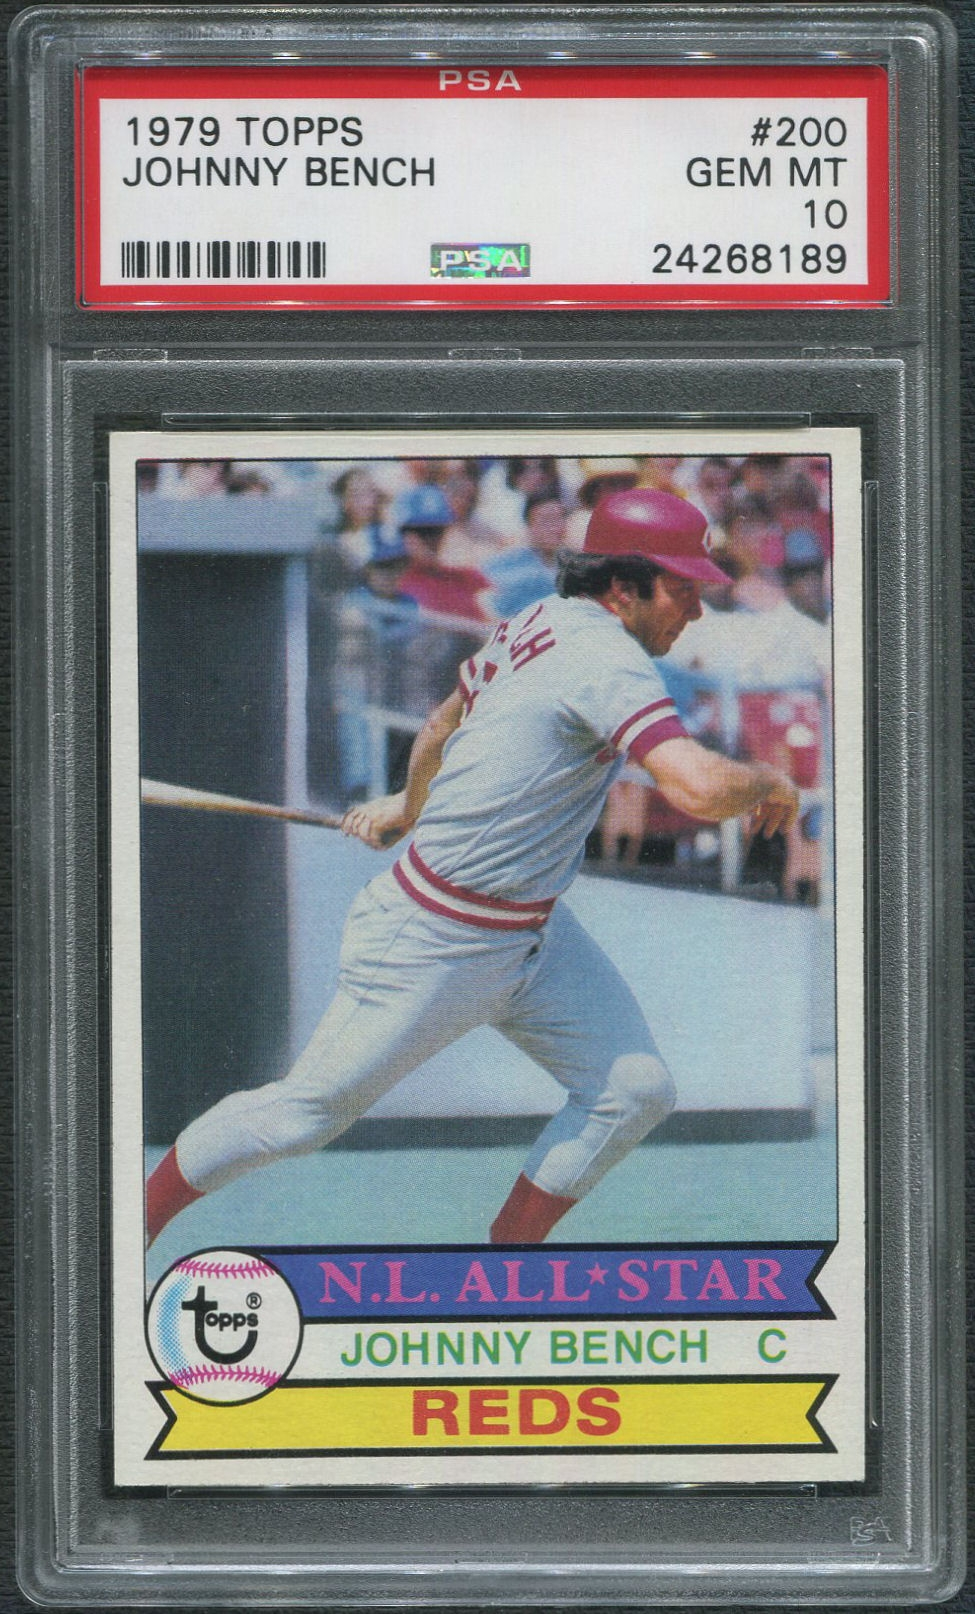 1979 Topps Baseball 200 Johnny Bench Psa 10 Gem Mt Da